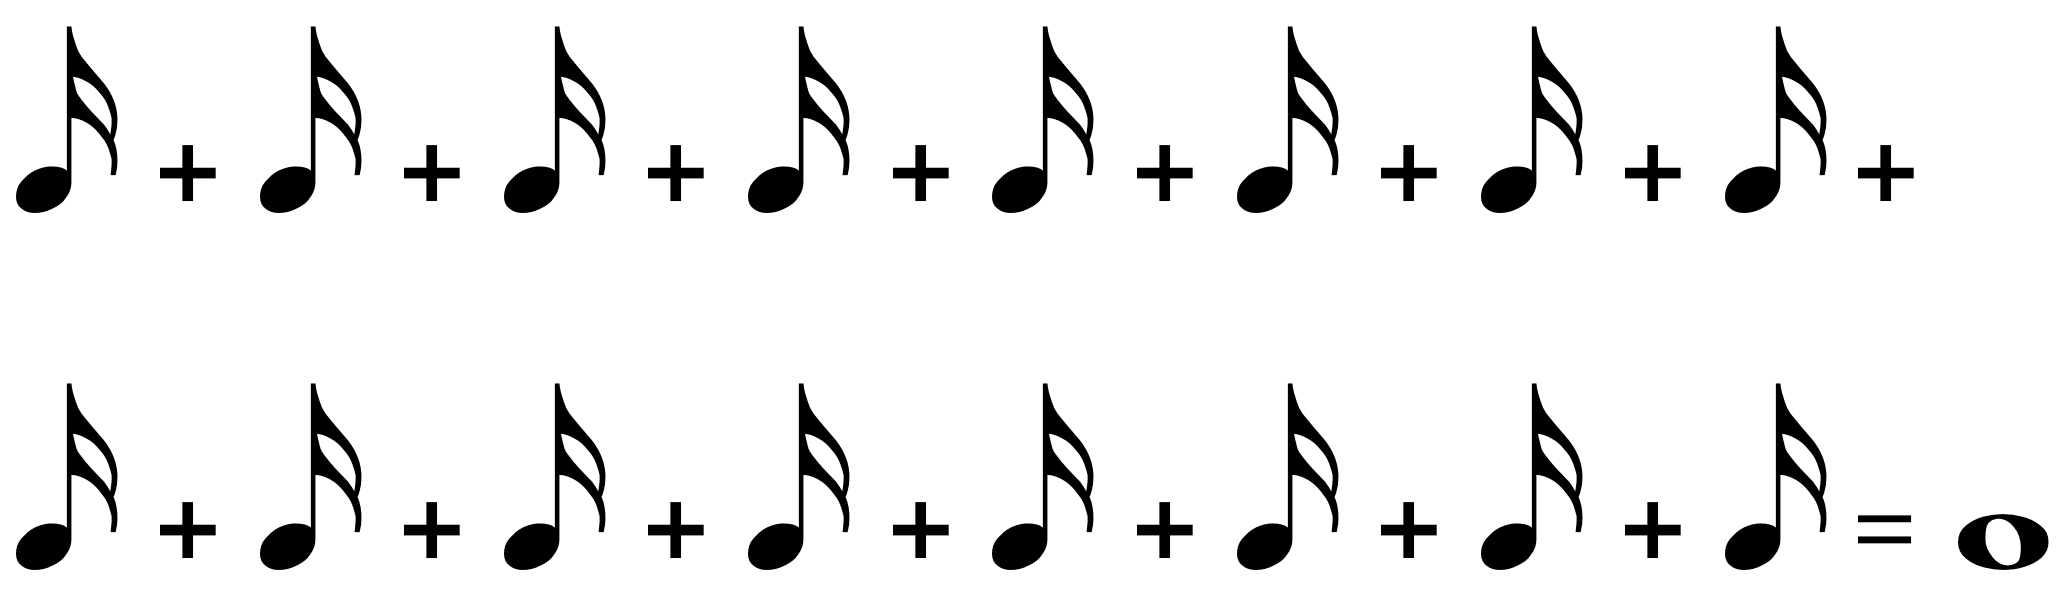 how to read music: 16 sixteenth notes equal one whole note